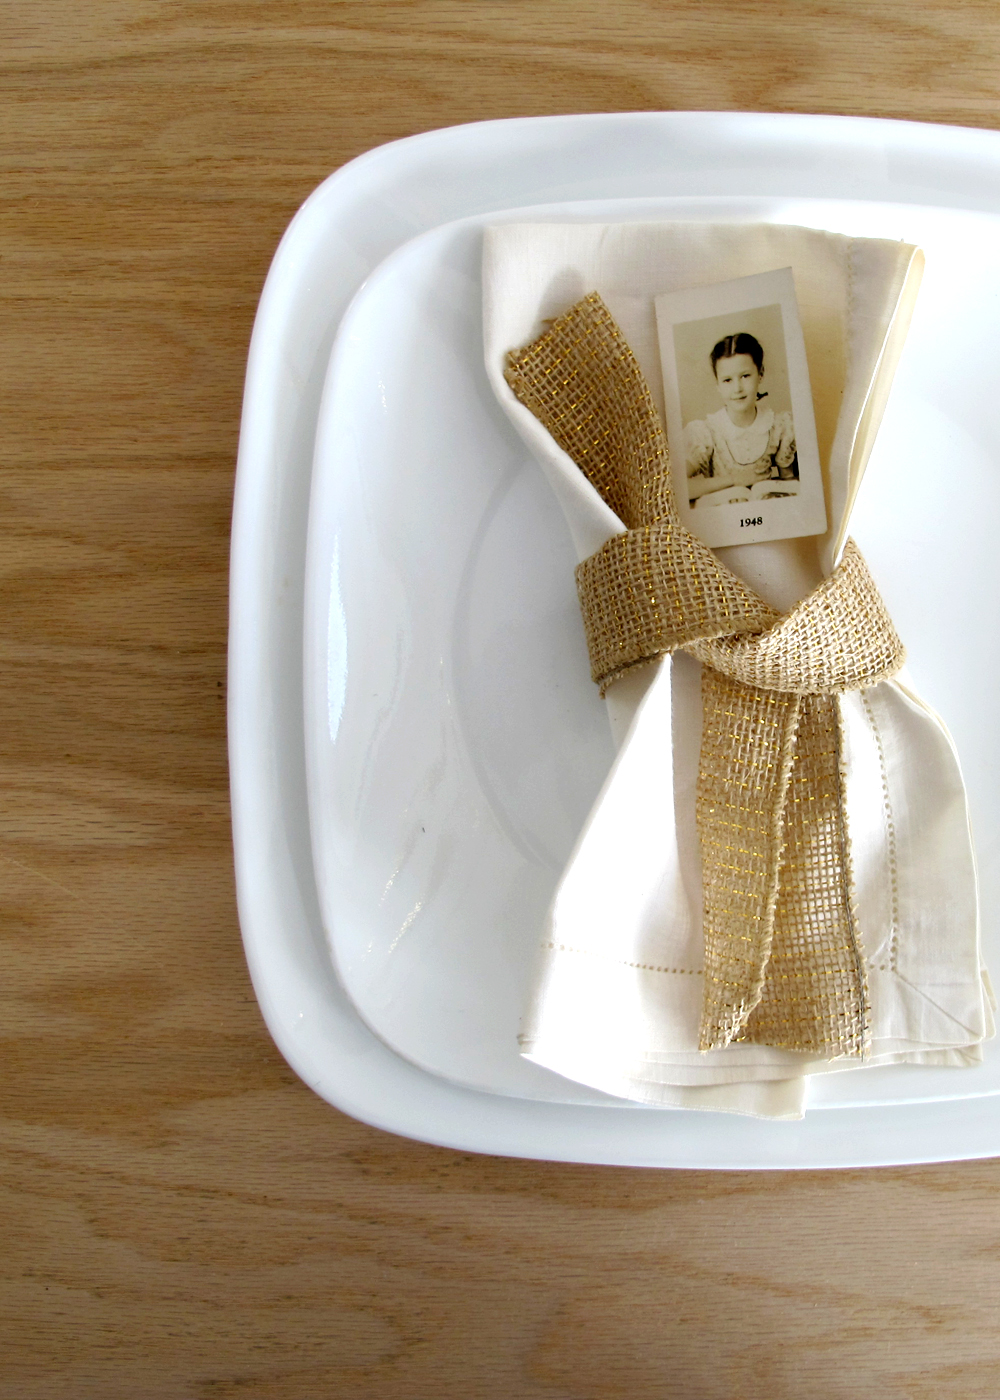 table setting with vintage photograph